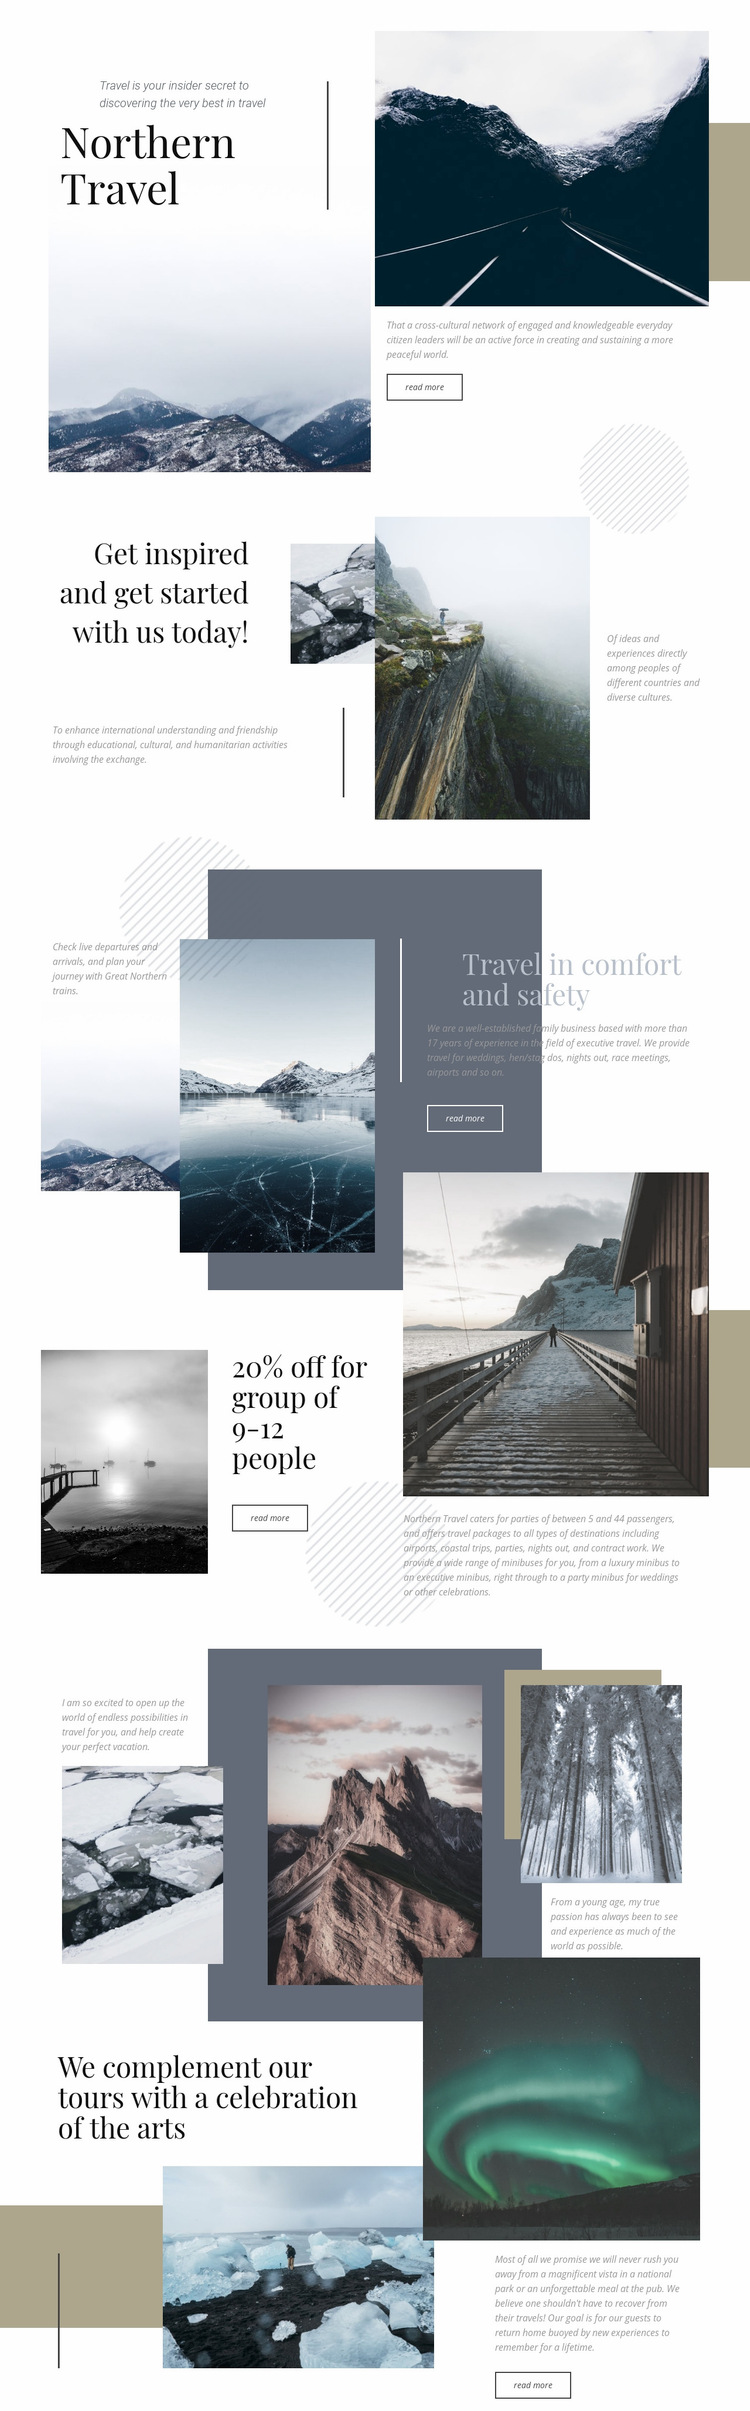 Northern Travel Web Page Design